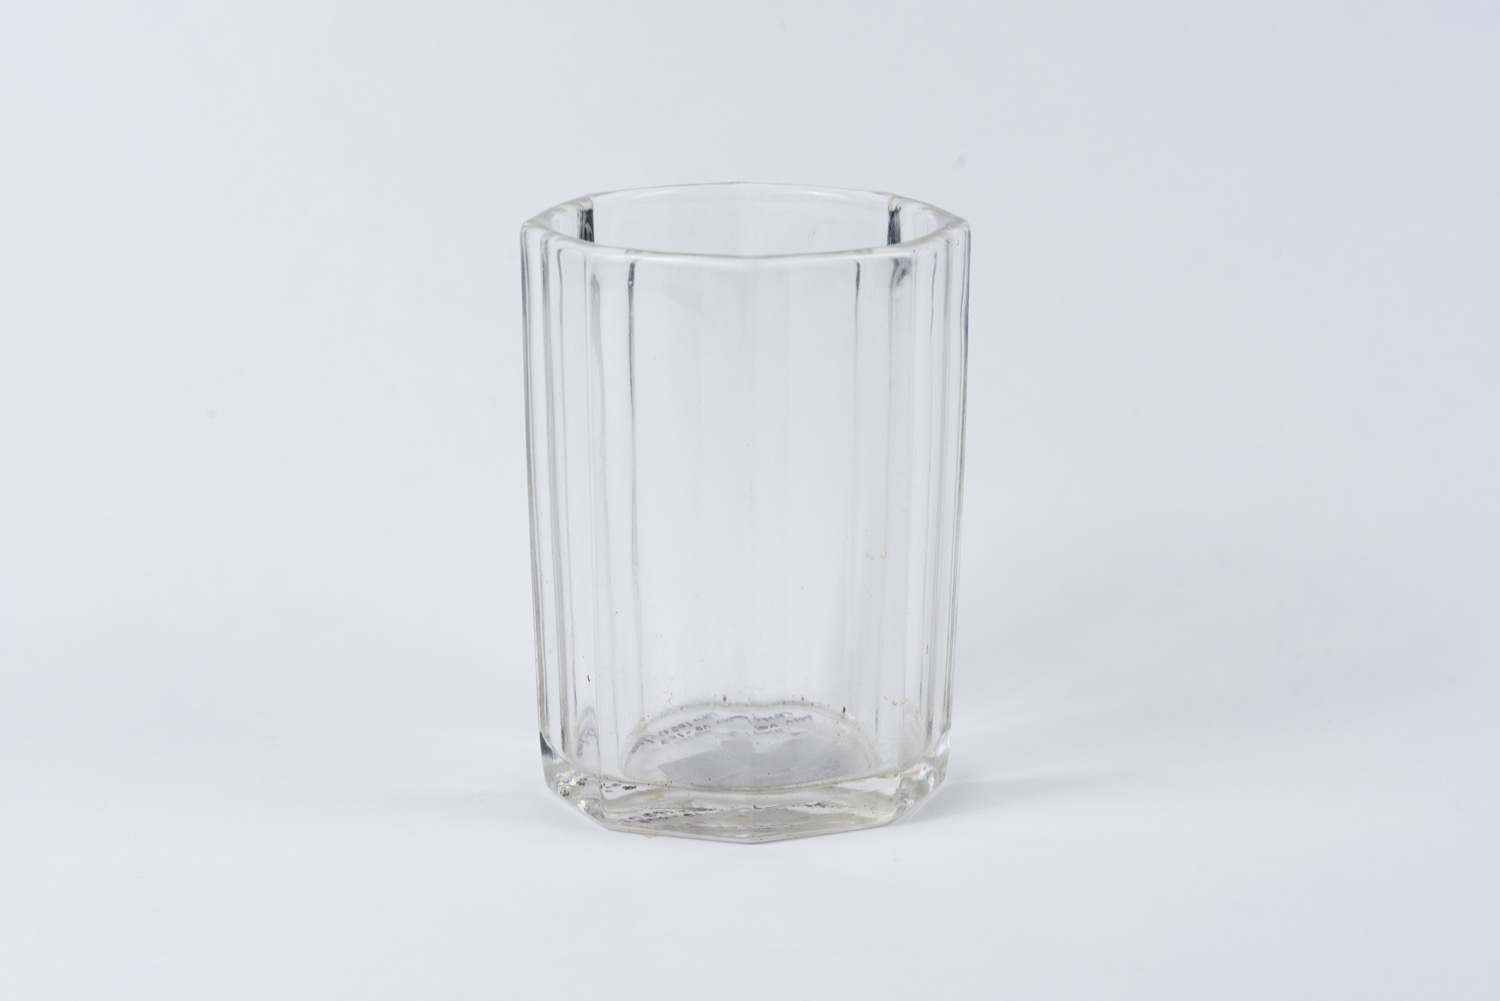 Tea glass, which was in personal use of V.I. Lenin during his stay in Switzerland in 1916-1917